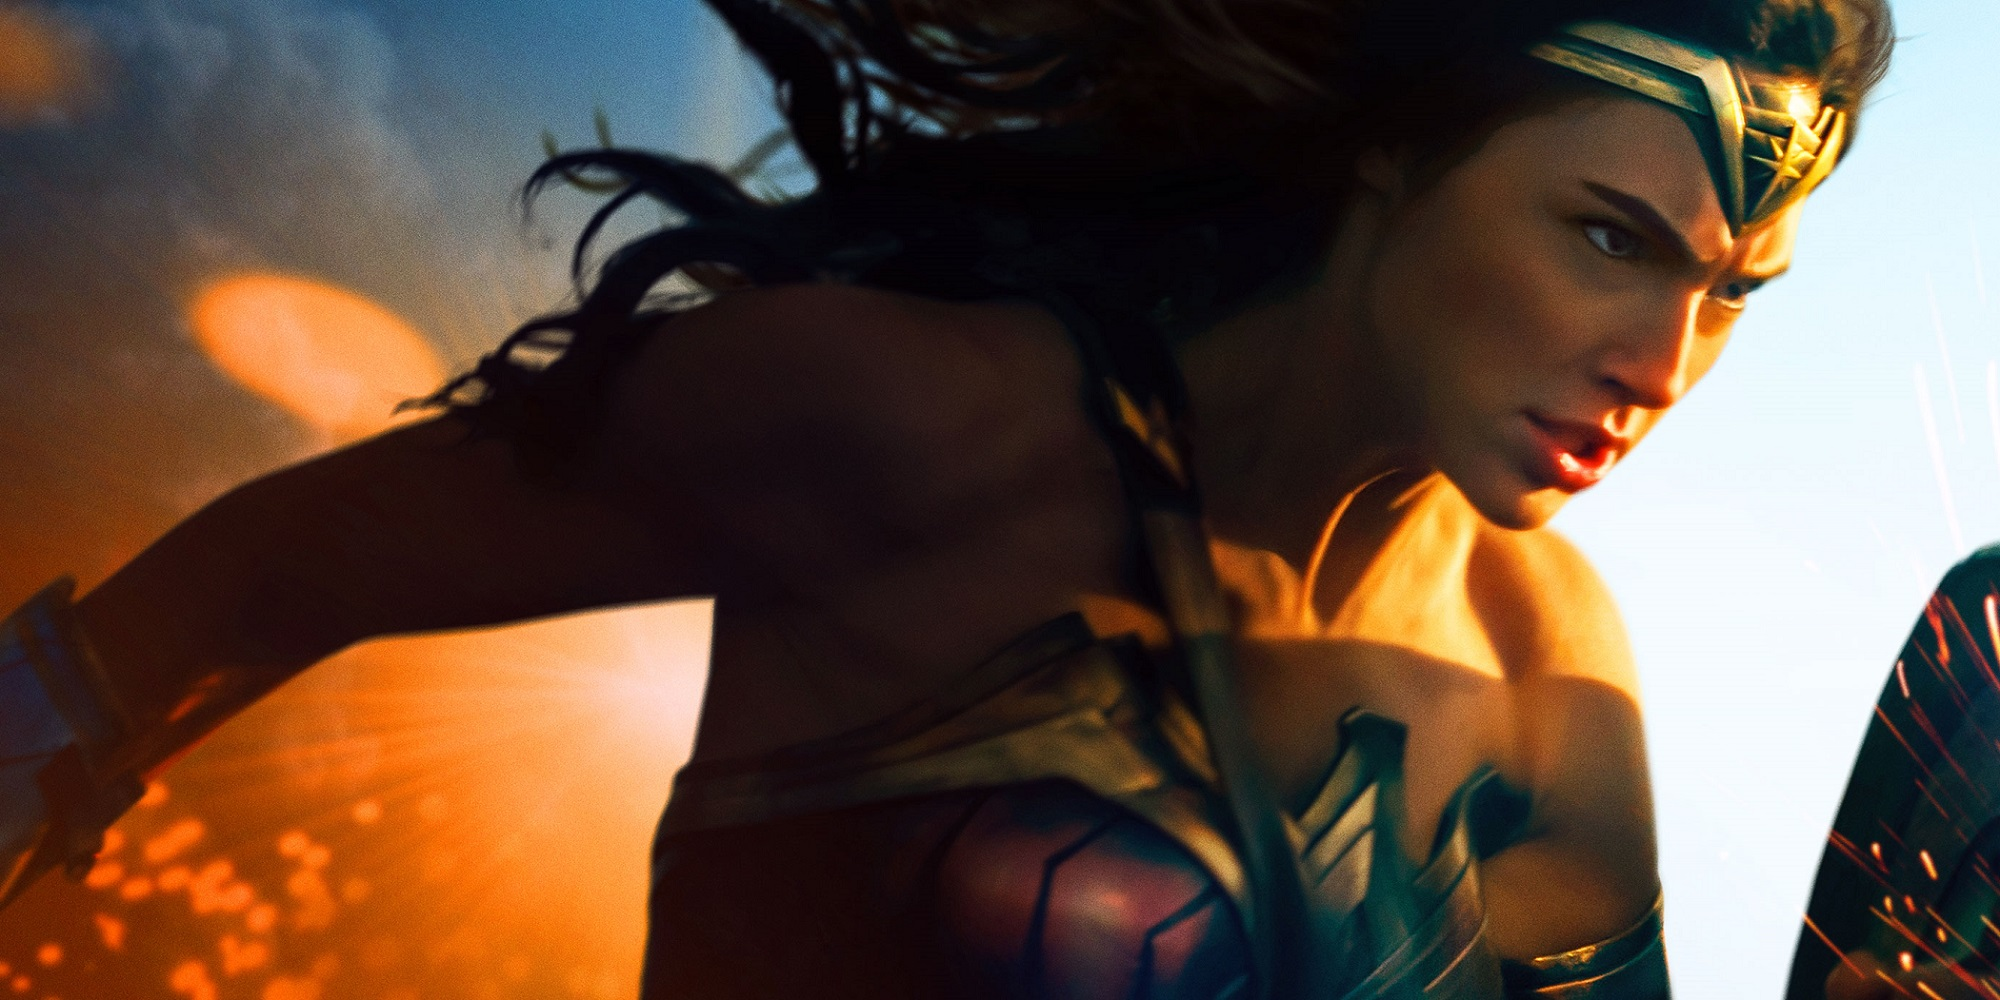 Wonder Woman movie poster courage theme Wonder Woman Director on Making Diana a Multidimensional Superhero